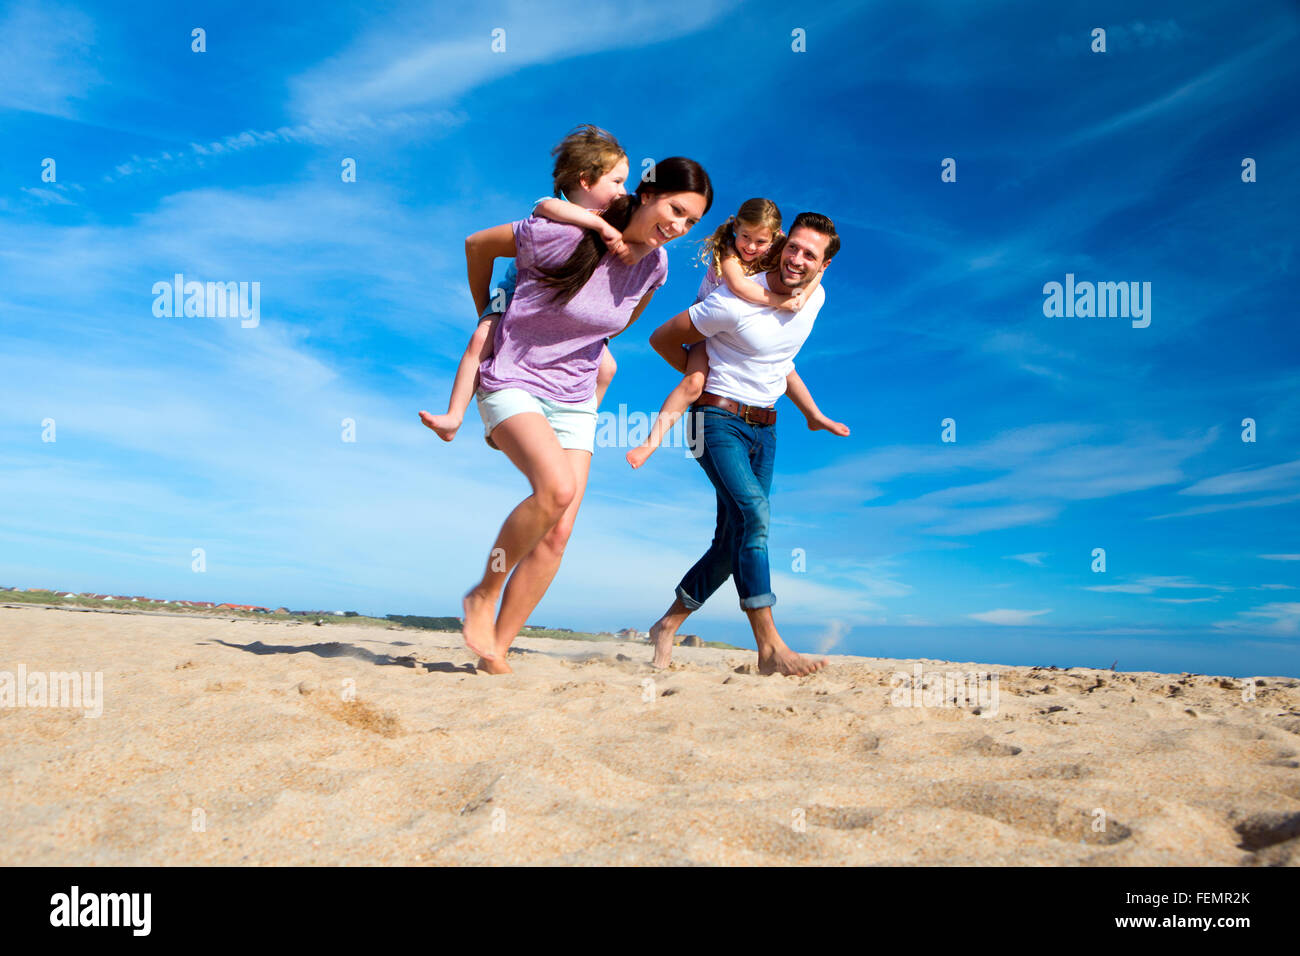 Mother and father piggybacking their son and daughter on the beach - Stock Image